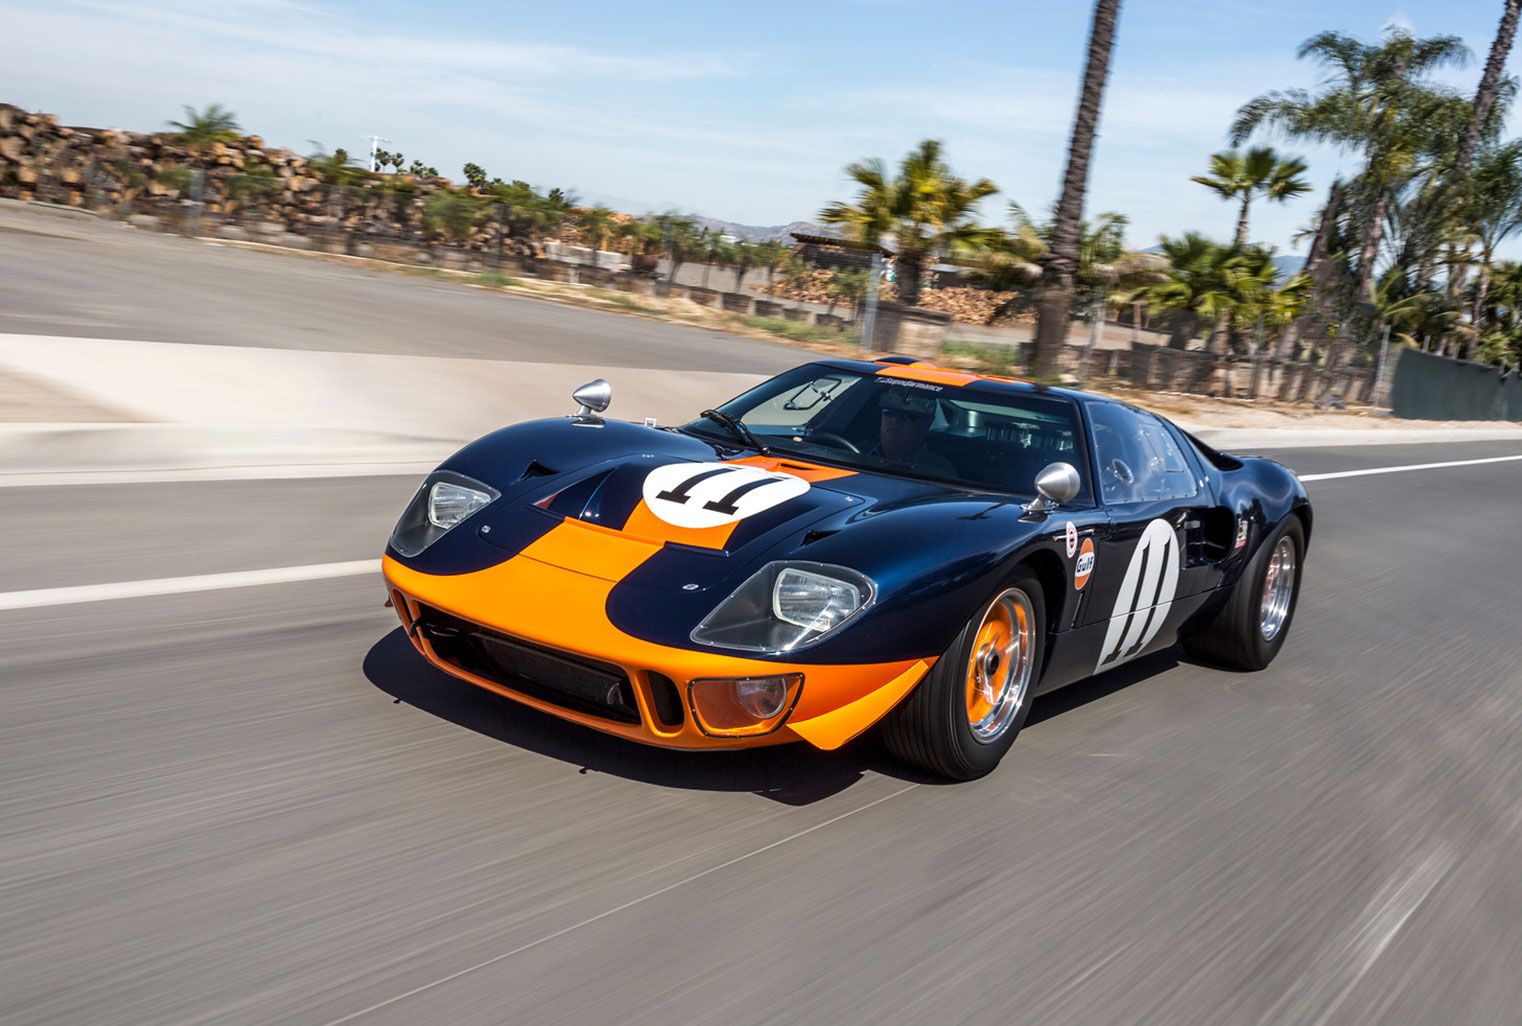 Superformance GT40 Mark I car for sale